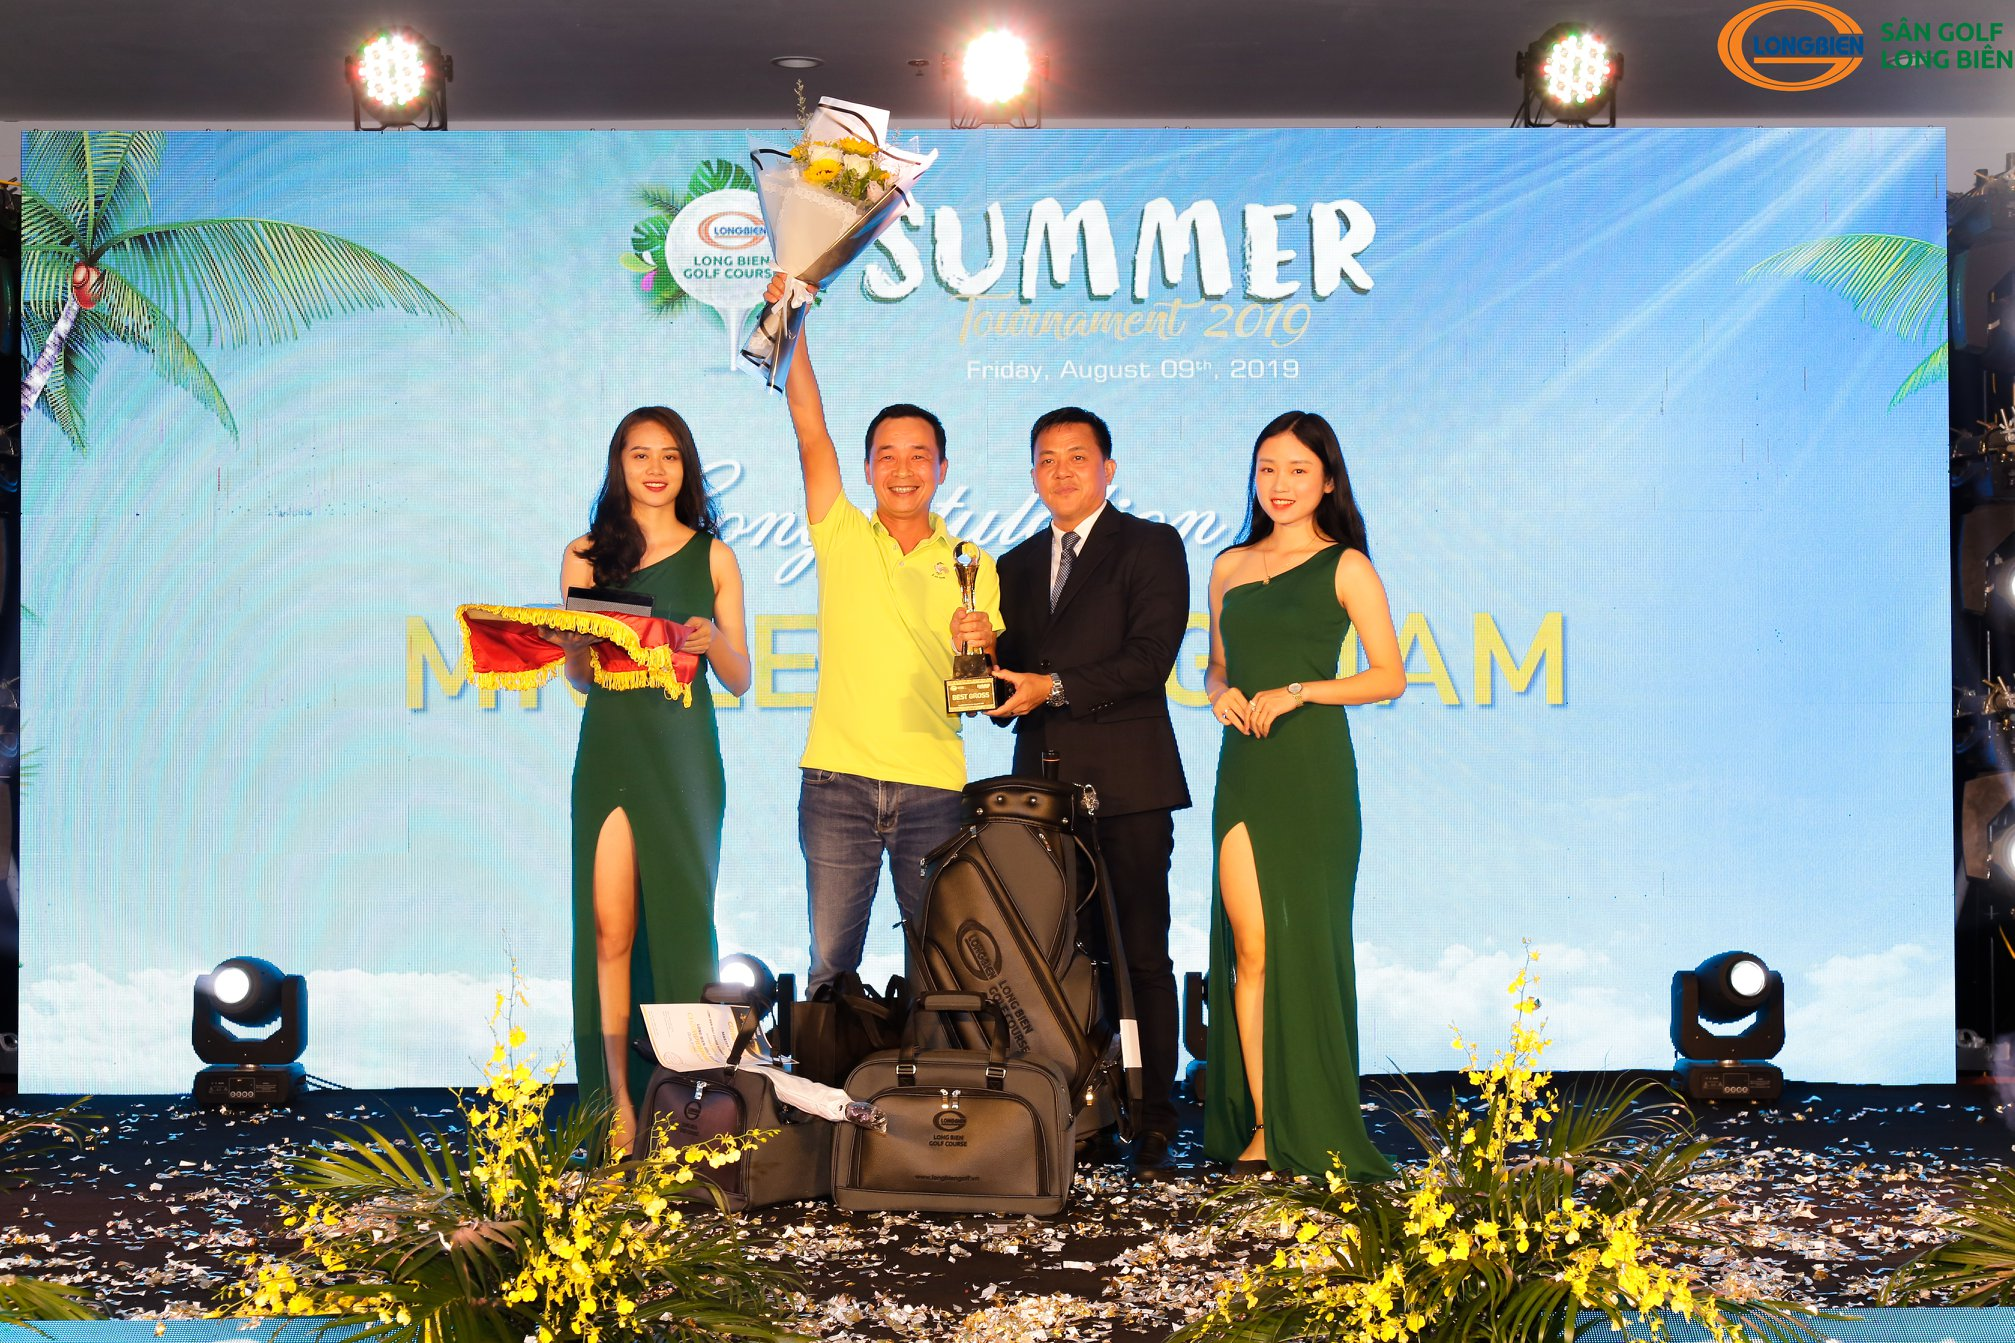 THƯ CẢM ƠN – LONG BIEN GOLF COURSE SUMMER TOURNAMENT 2019